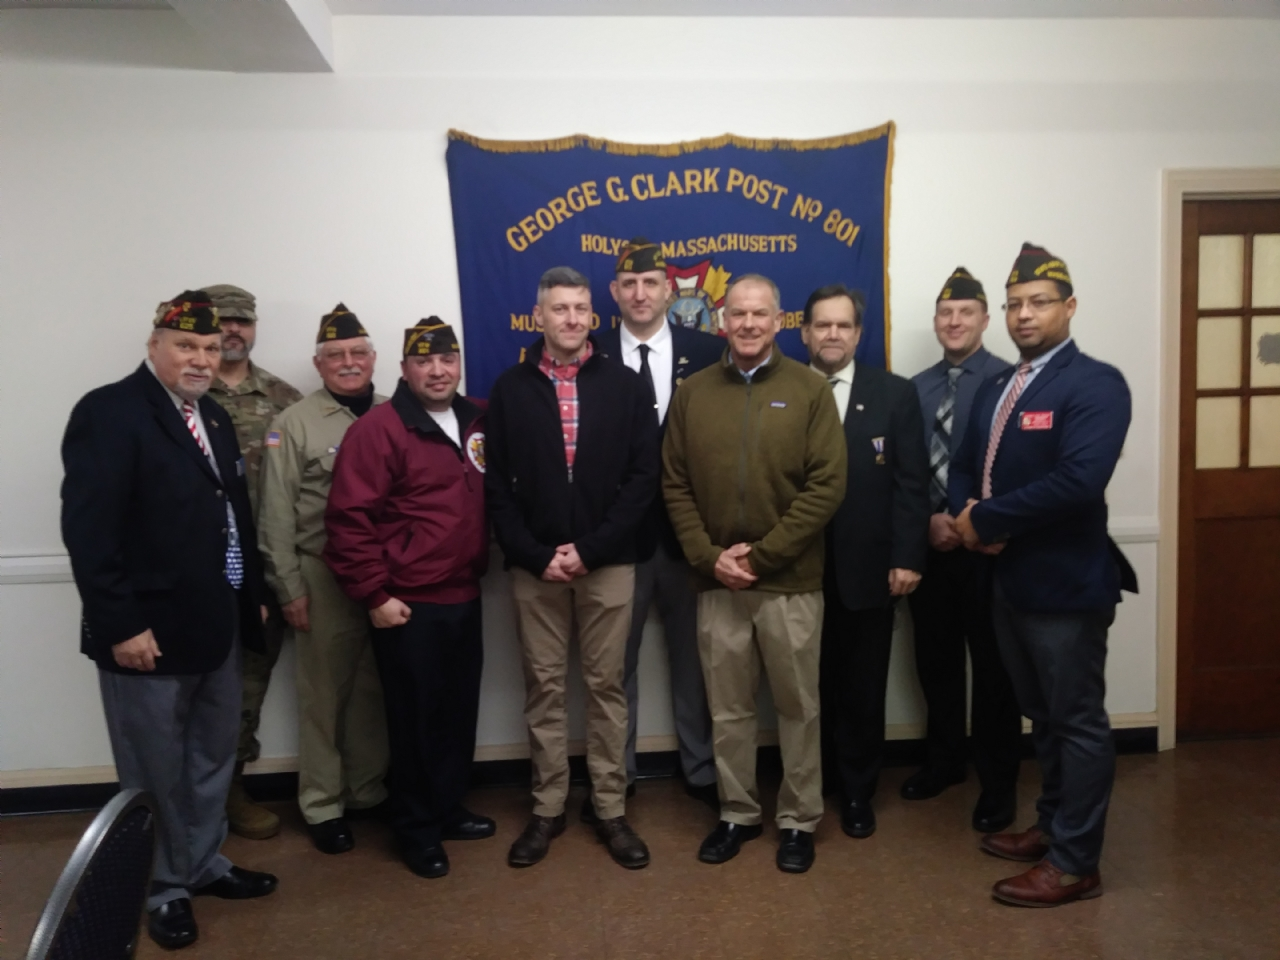 New Member Induction Ceremony for VFW Post 801 in Holyoke, MA.